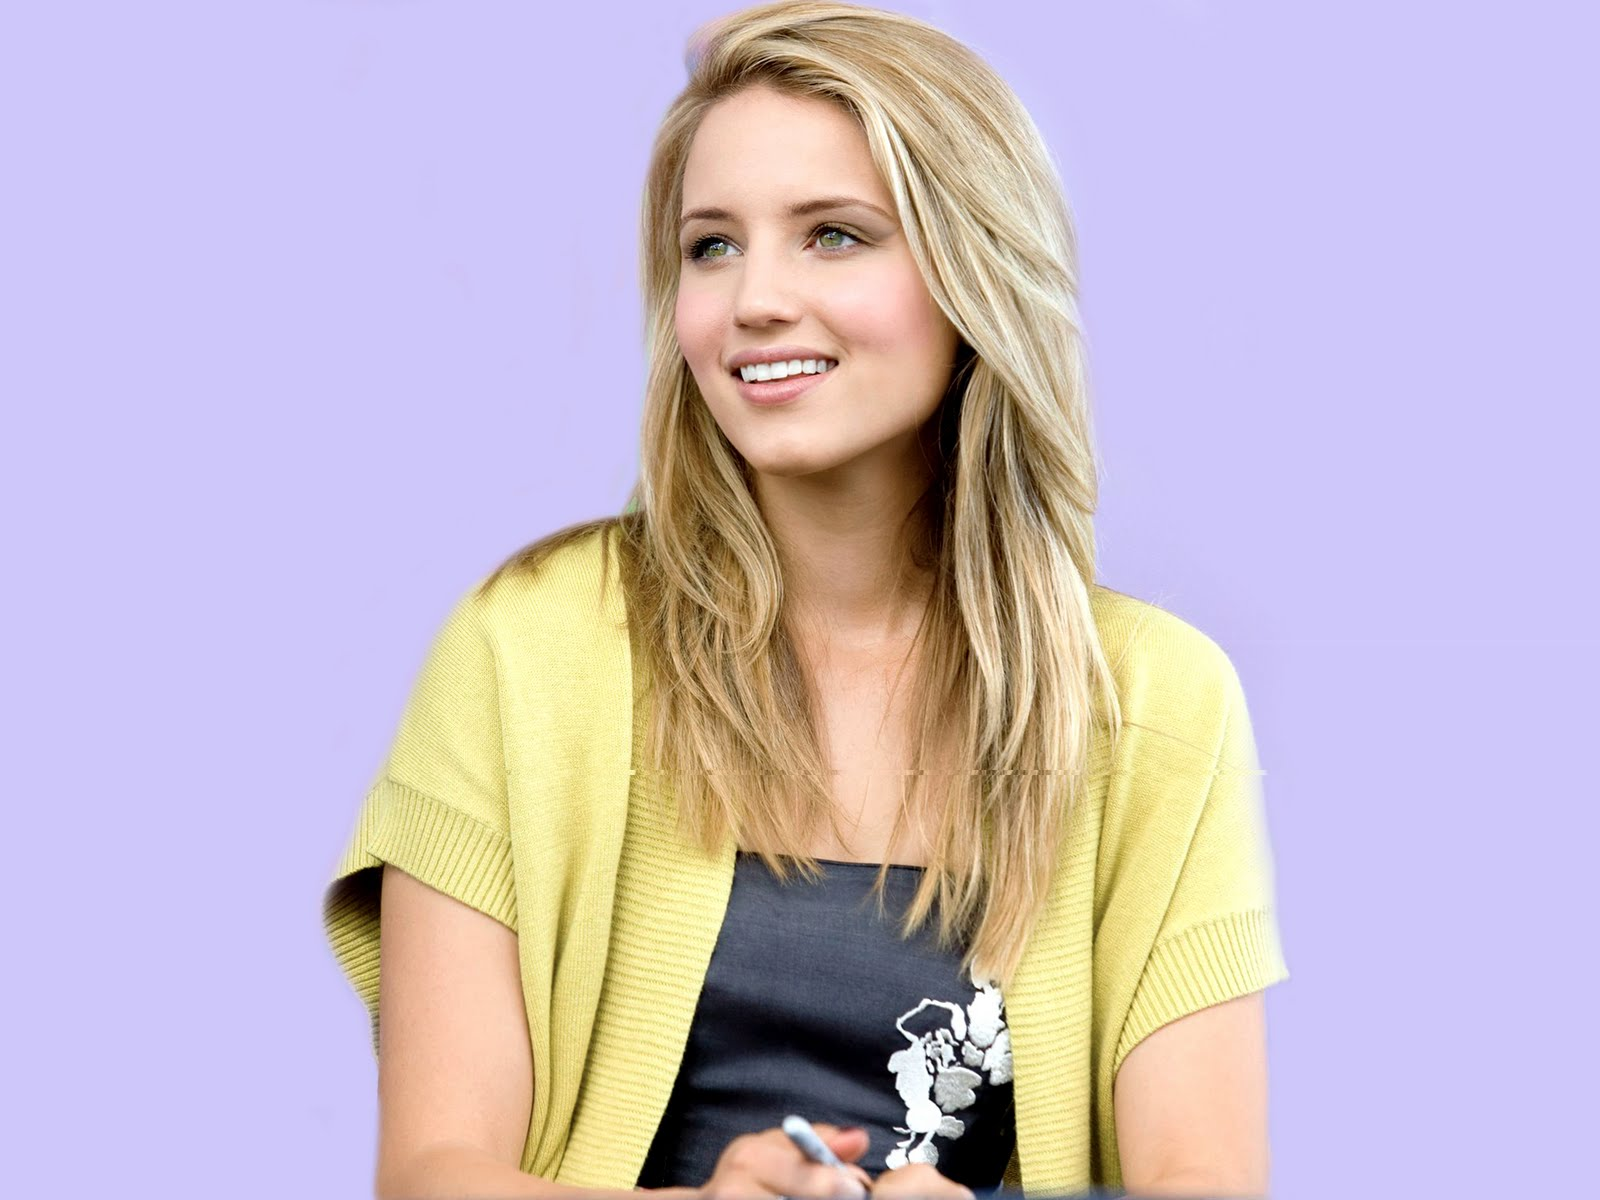 1600x1200 - Dianna Agron Wallpapers 2